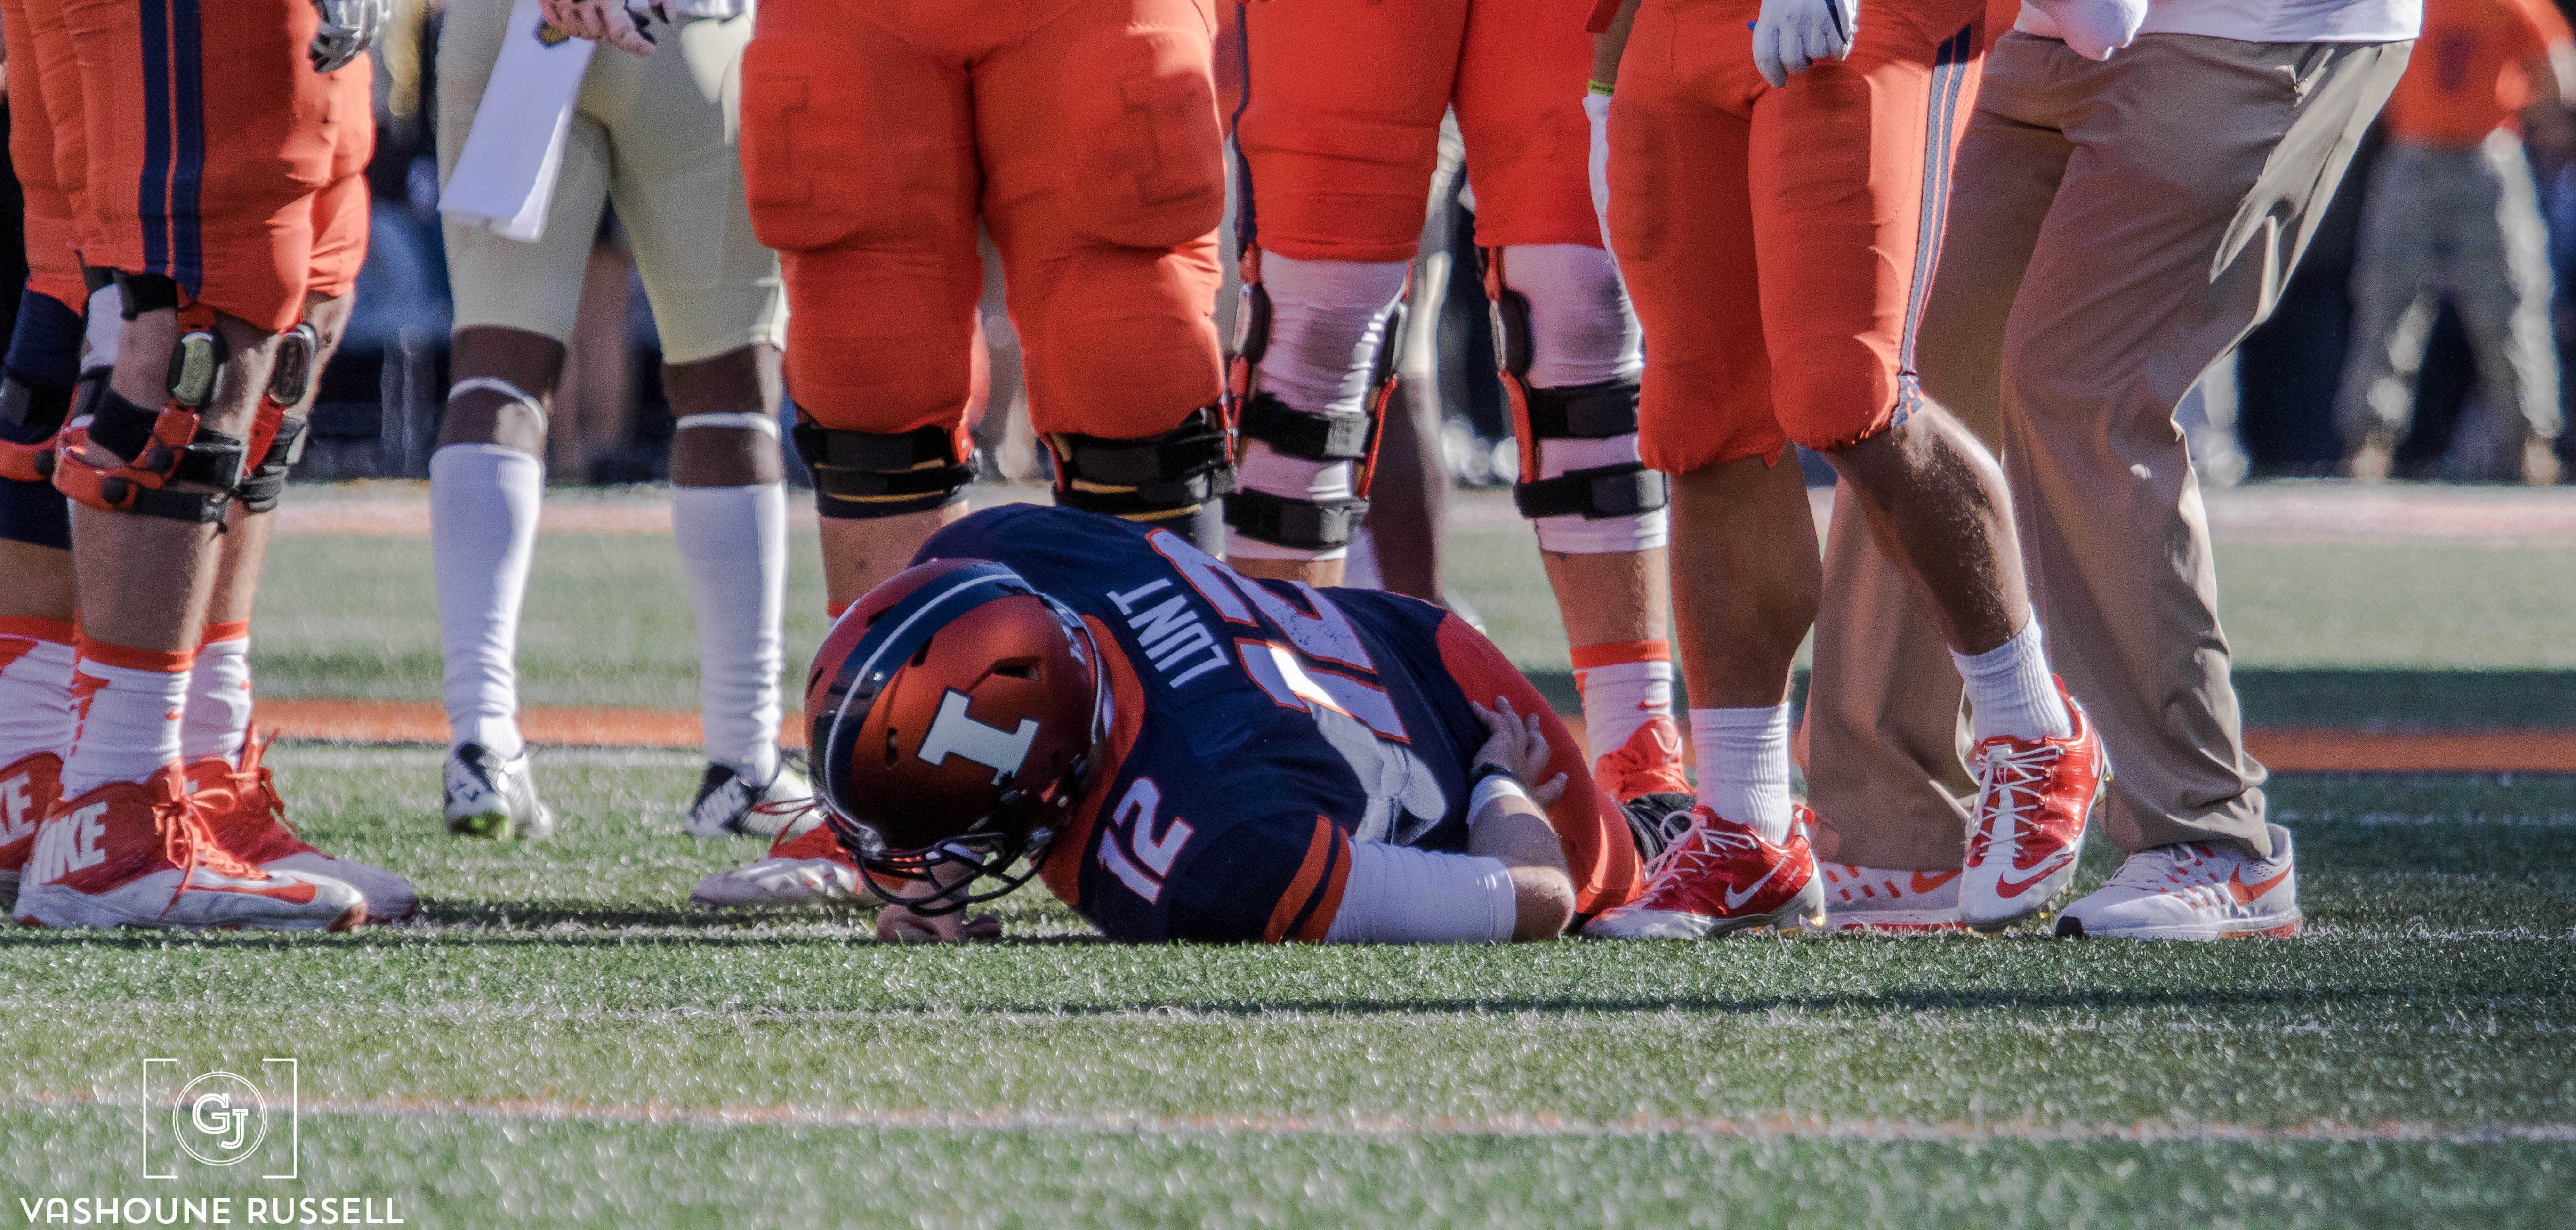 Wes Lunt crumpled into a dormant pile